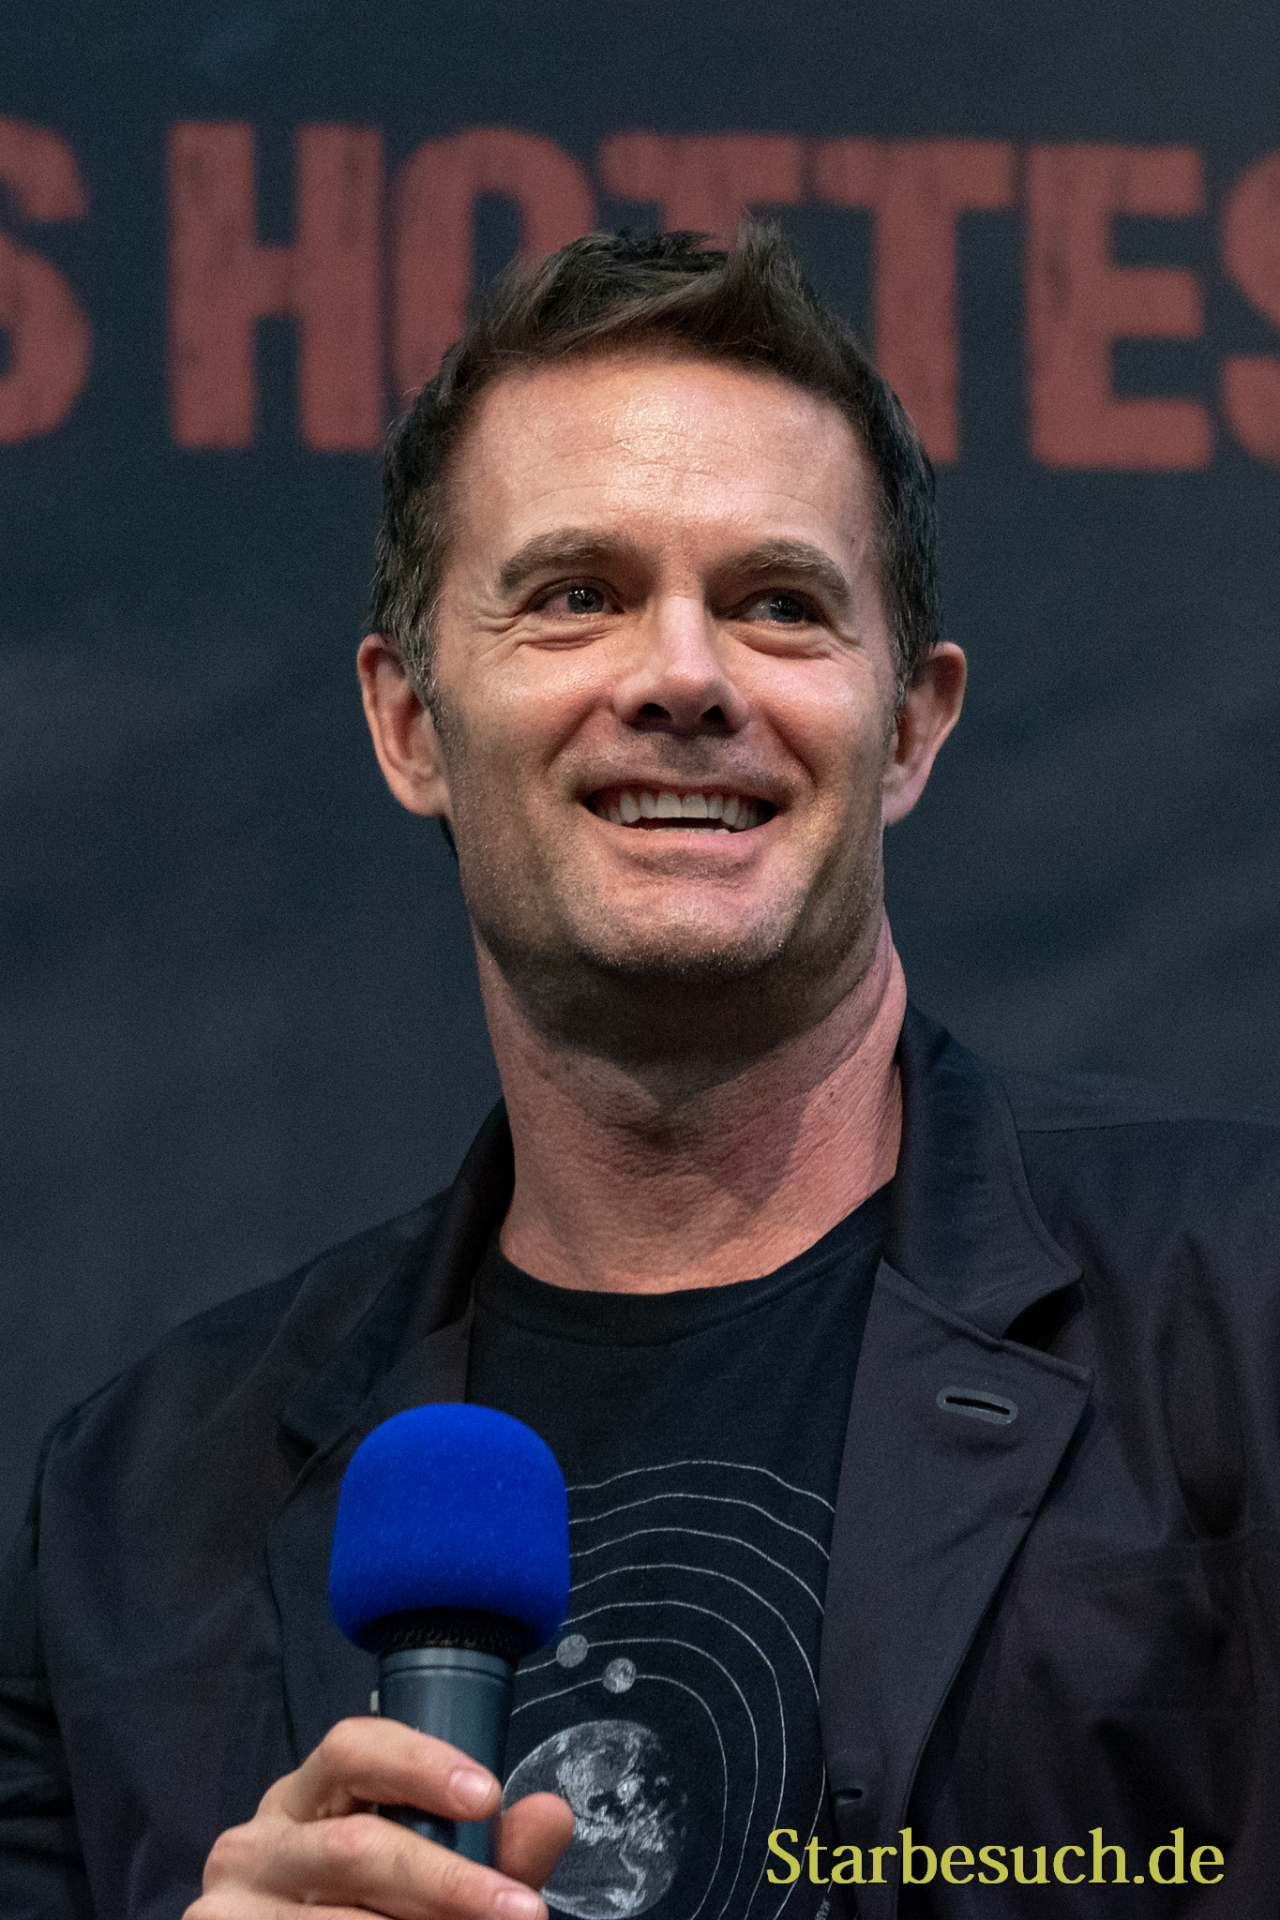 DORTMUND, GERMANY - November 3rd 2018: Garret Dillahunt at Weekend of Hell 2018